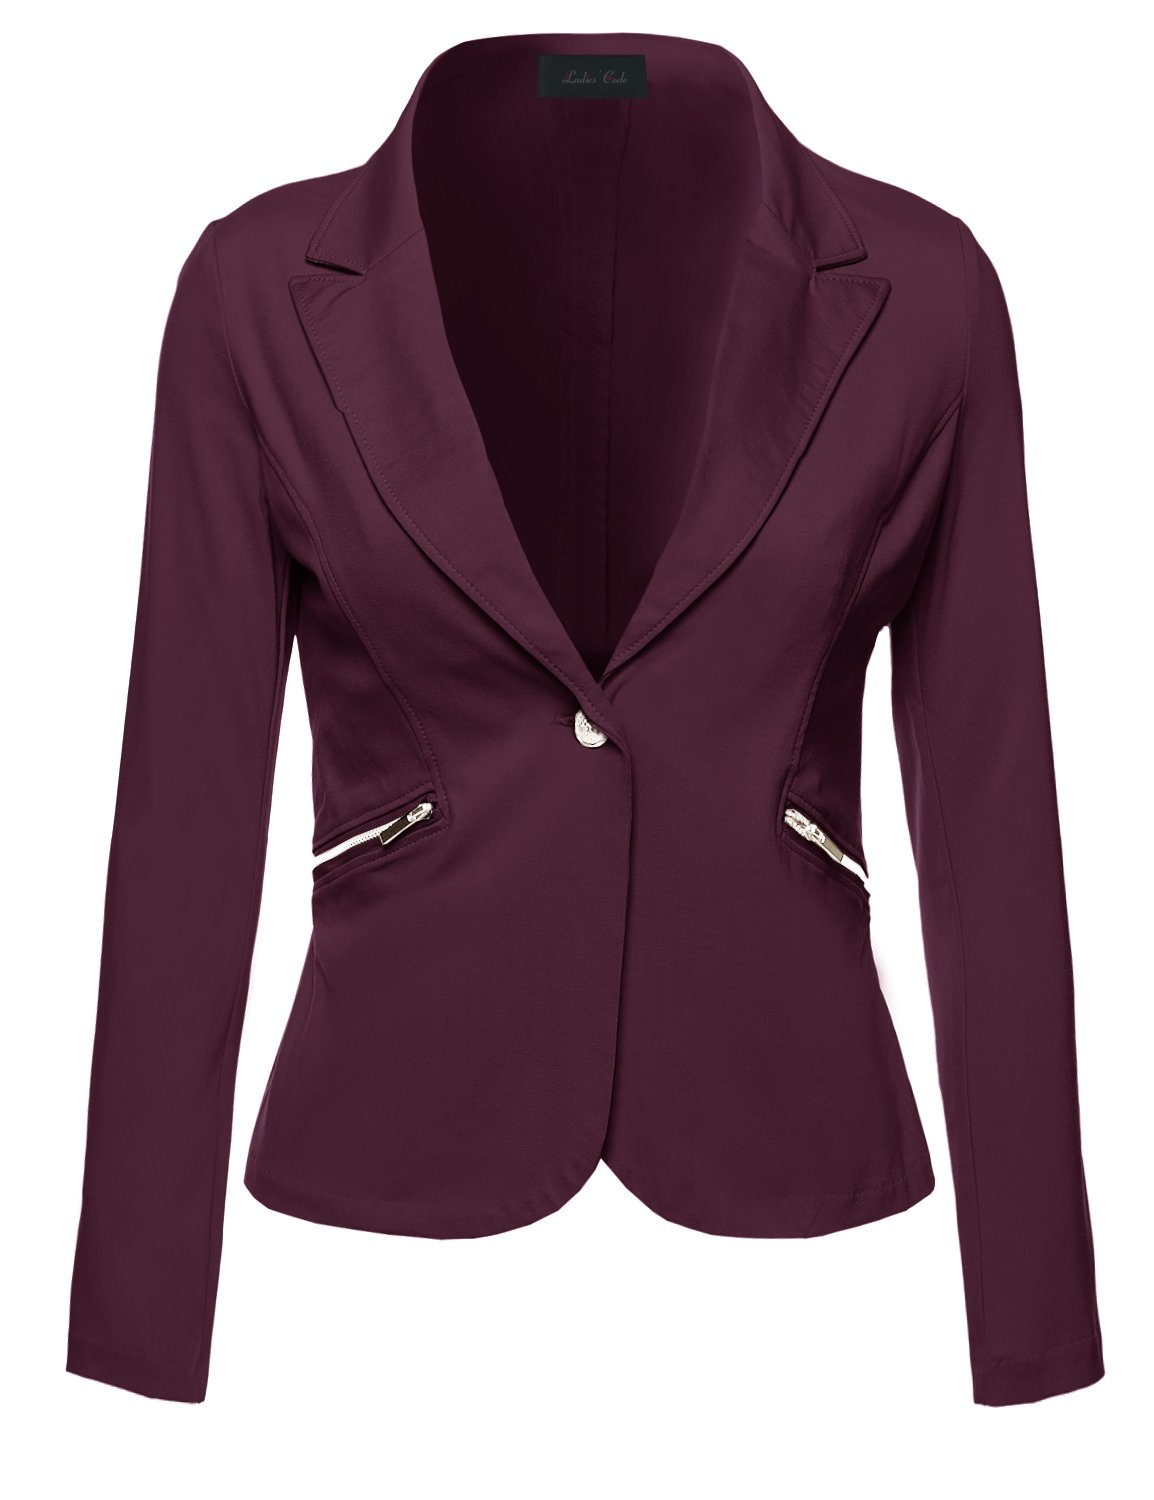 Ladies' Code Business Office Wear Long Sleeve One Button Fly Blazer Burgundy L Size